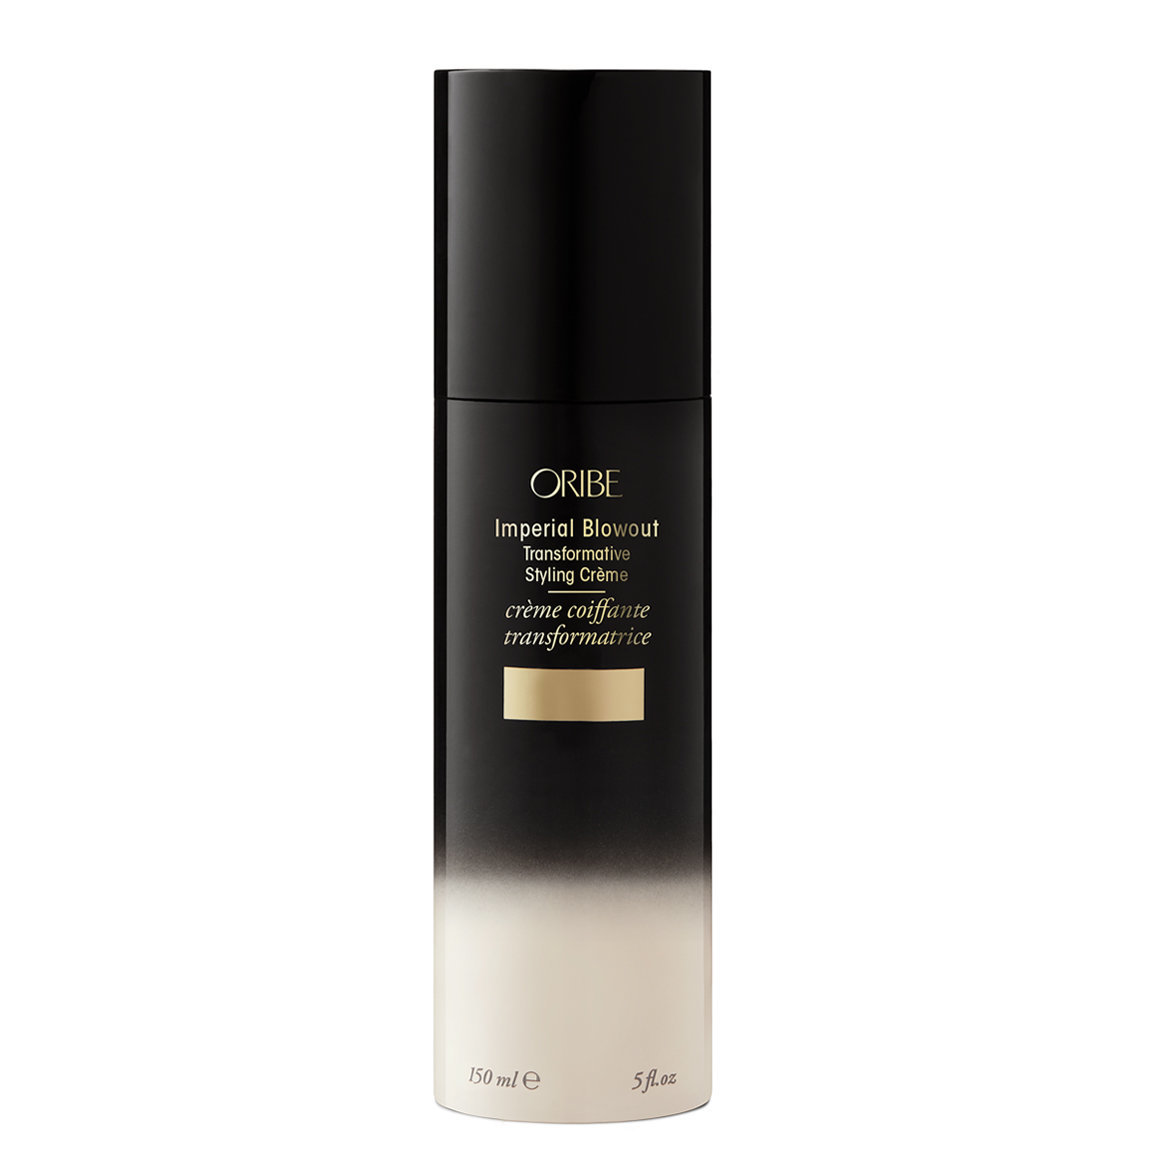 Oribe Imperial Blowout Transformative Styling Crème alternative view 1 - product swatch.